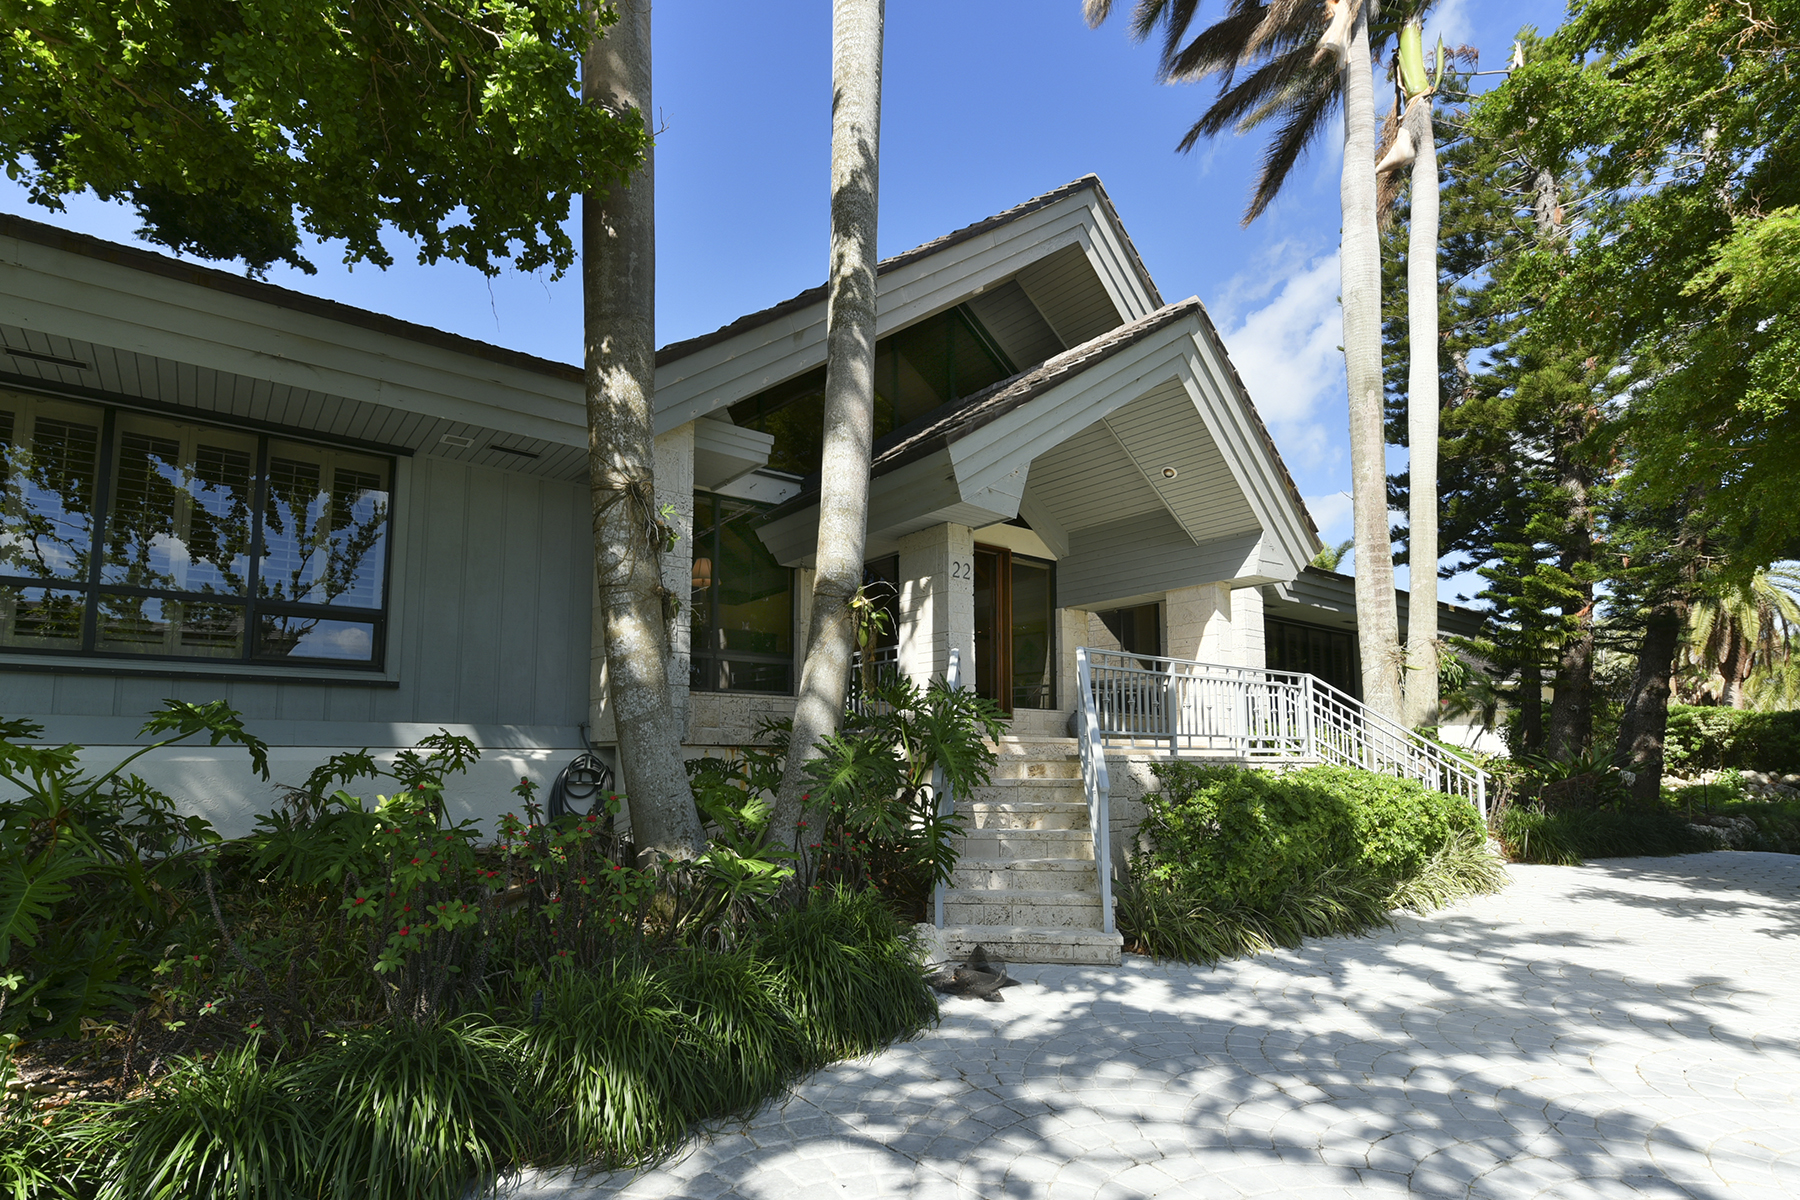 Maison unifamiliale pour l Vente à Spacious Waterfront Home at Ocean Reef 22 Sunrise Cay Drive Key Largo, Florida 33037 États-Unis